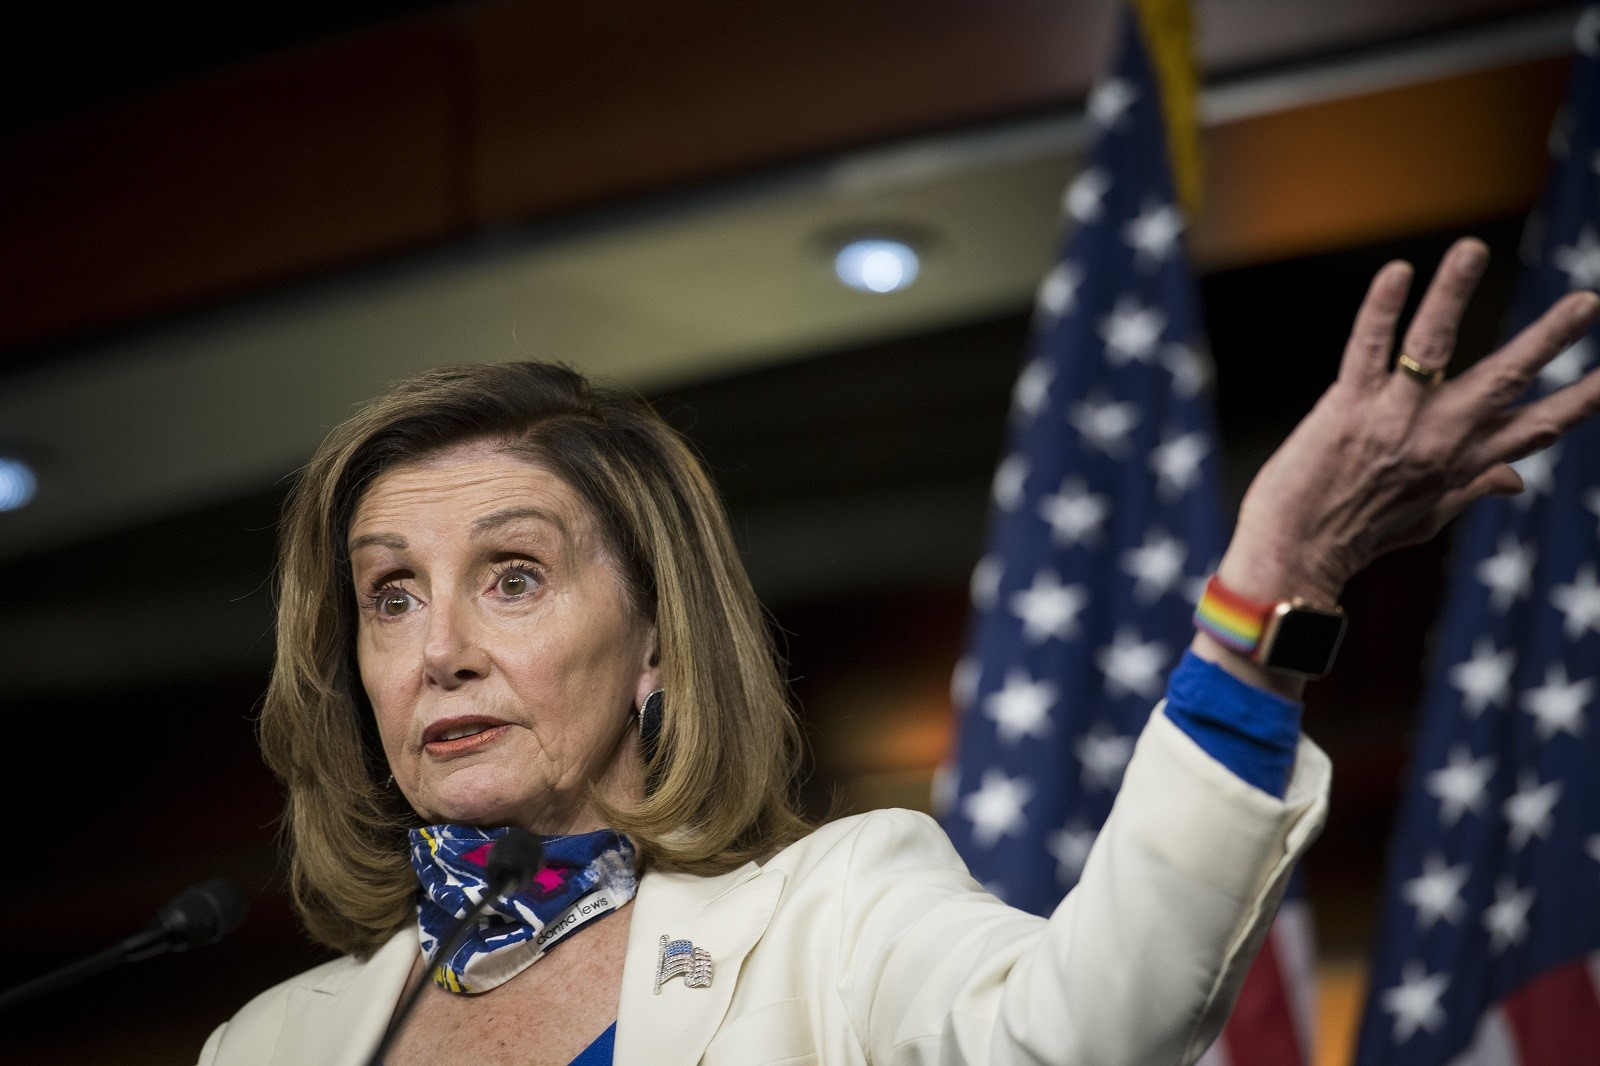 Nancy Pelosi just did something infuriating in the midst of stimulus negotiations